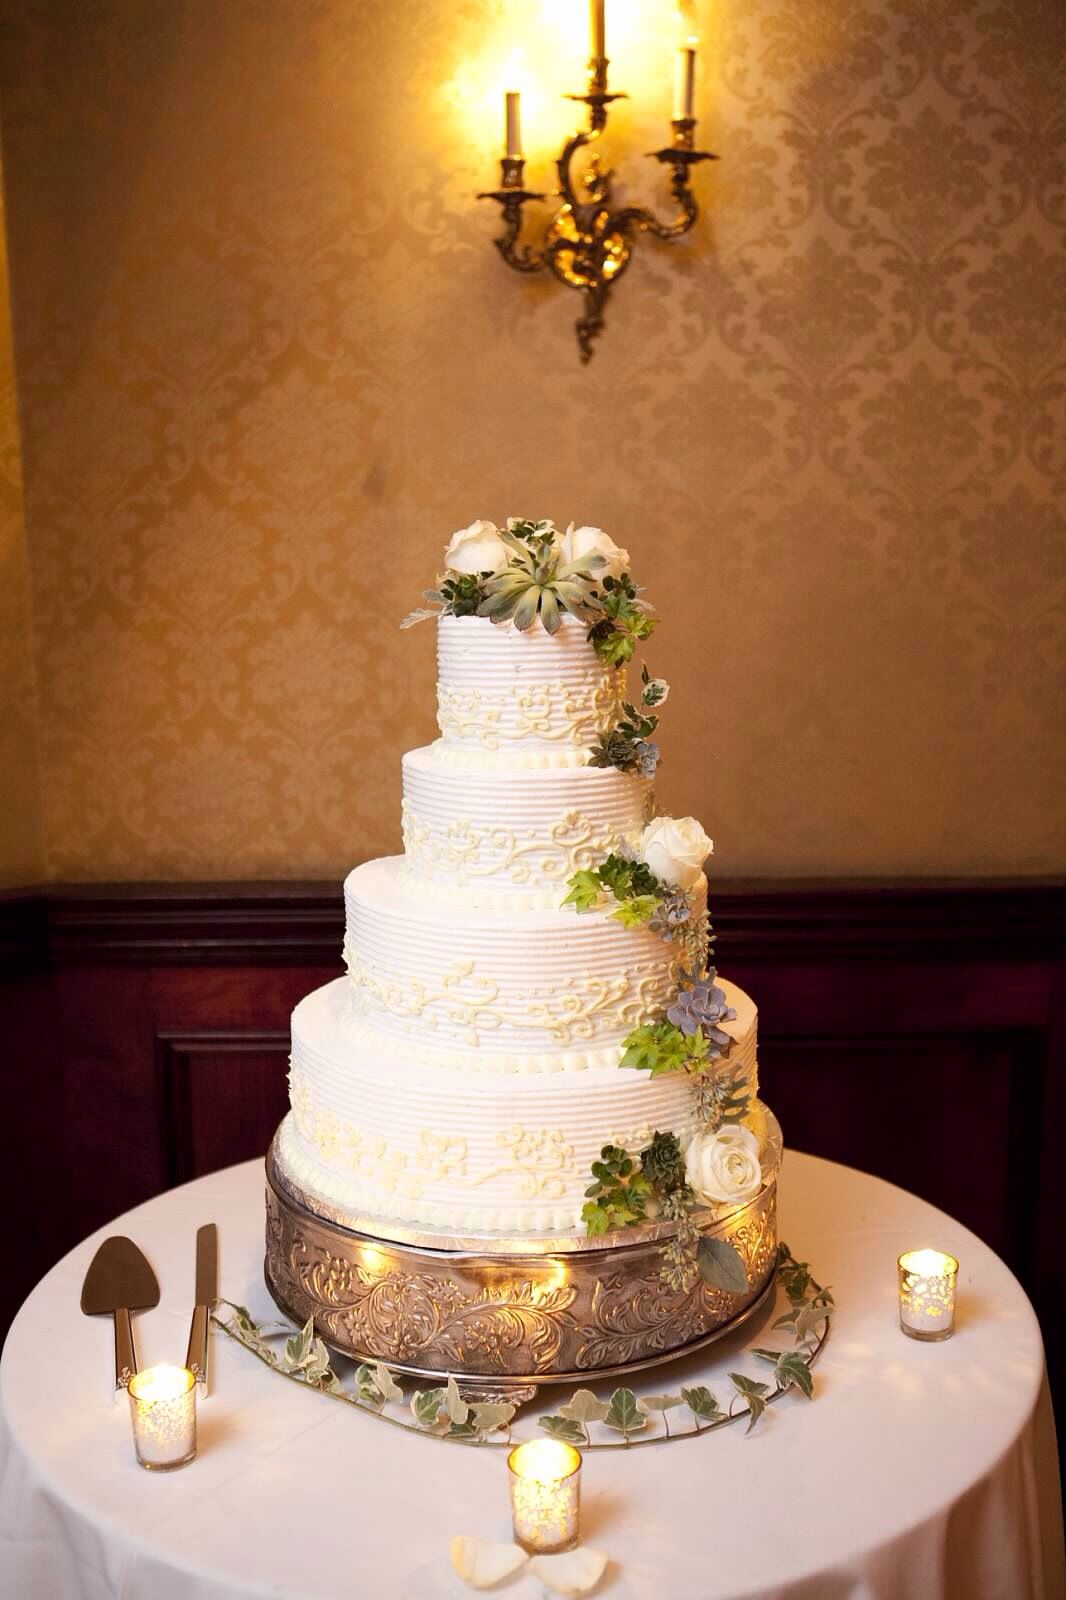 Buttercream Frosting Wedding Cake With Roses And